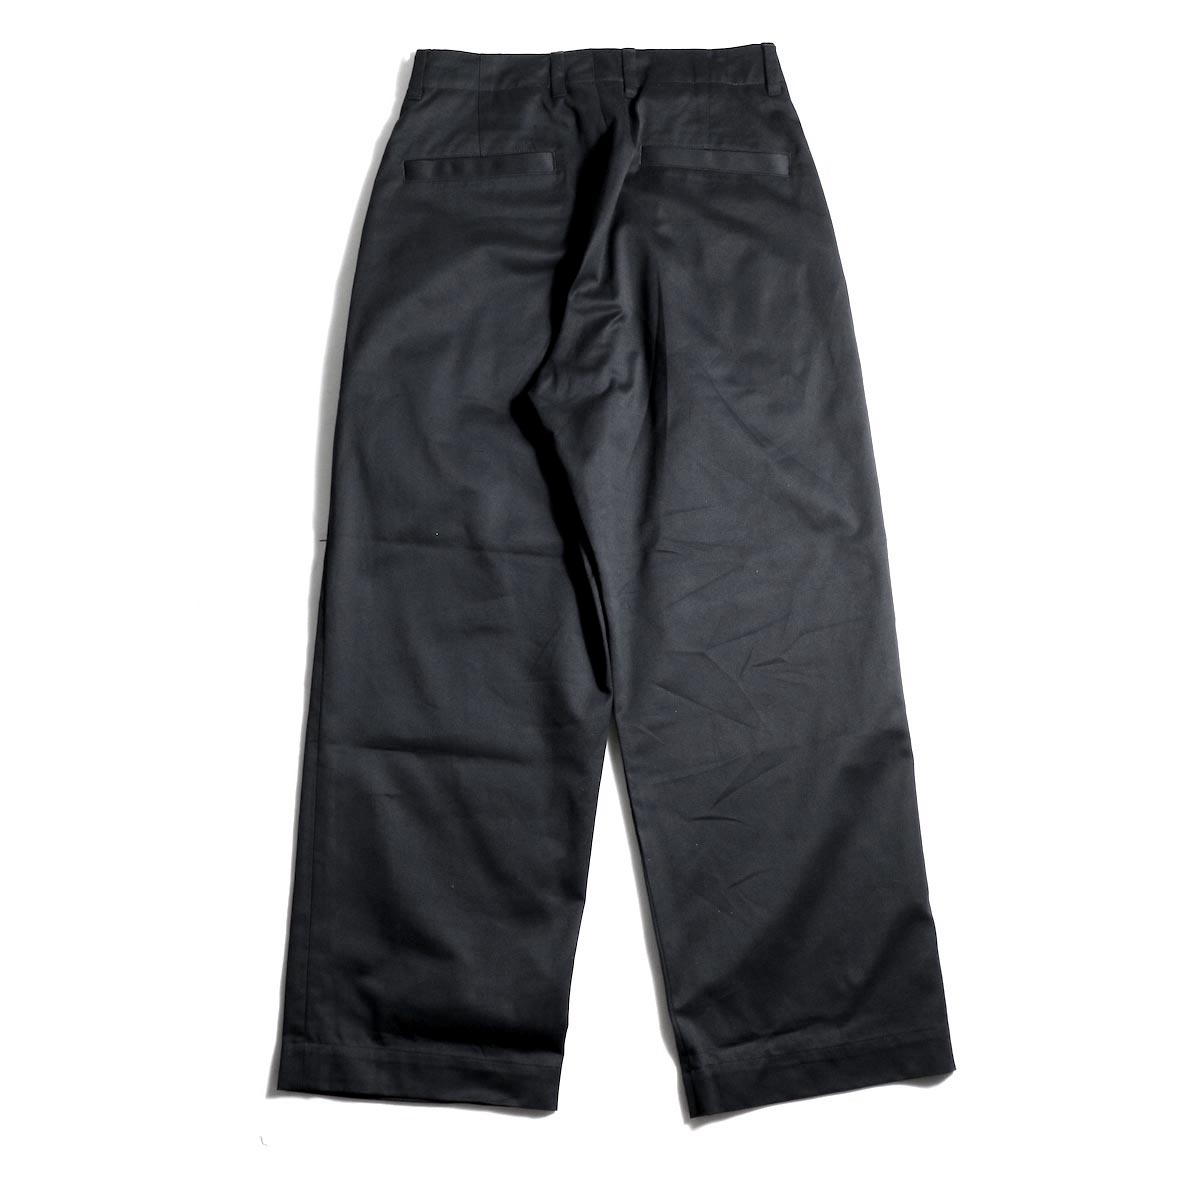 UNIVERSAL PRODUCTS / No Tuck Wide Chino Trousers (Black)背面